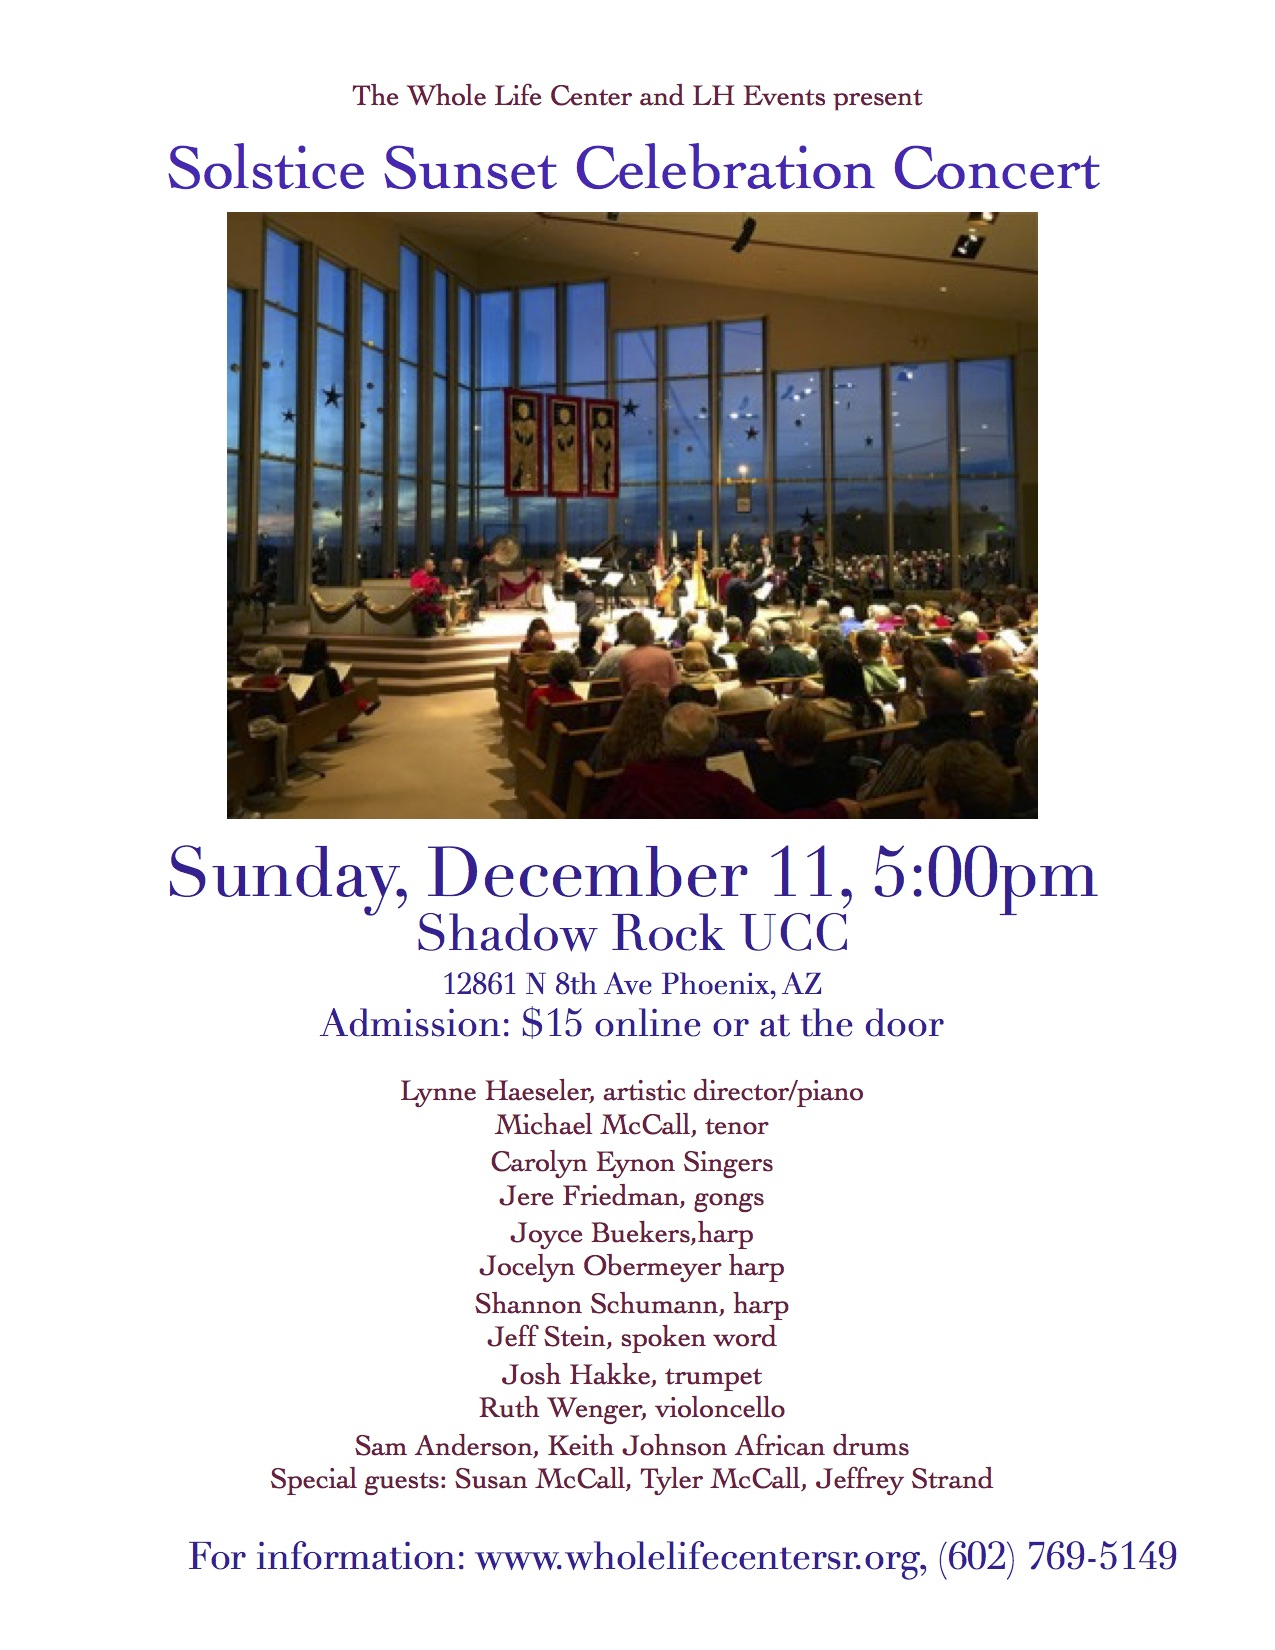 Solstice Celebration Concert @ Shadow Rock UCC